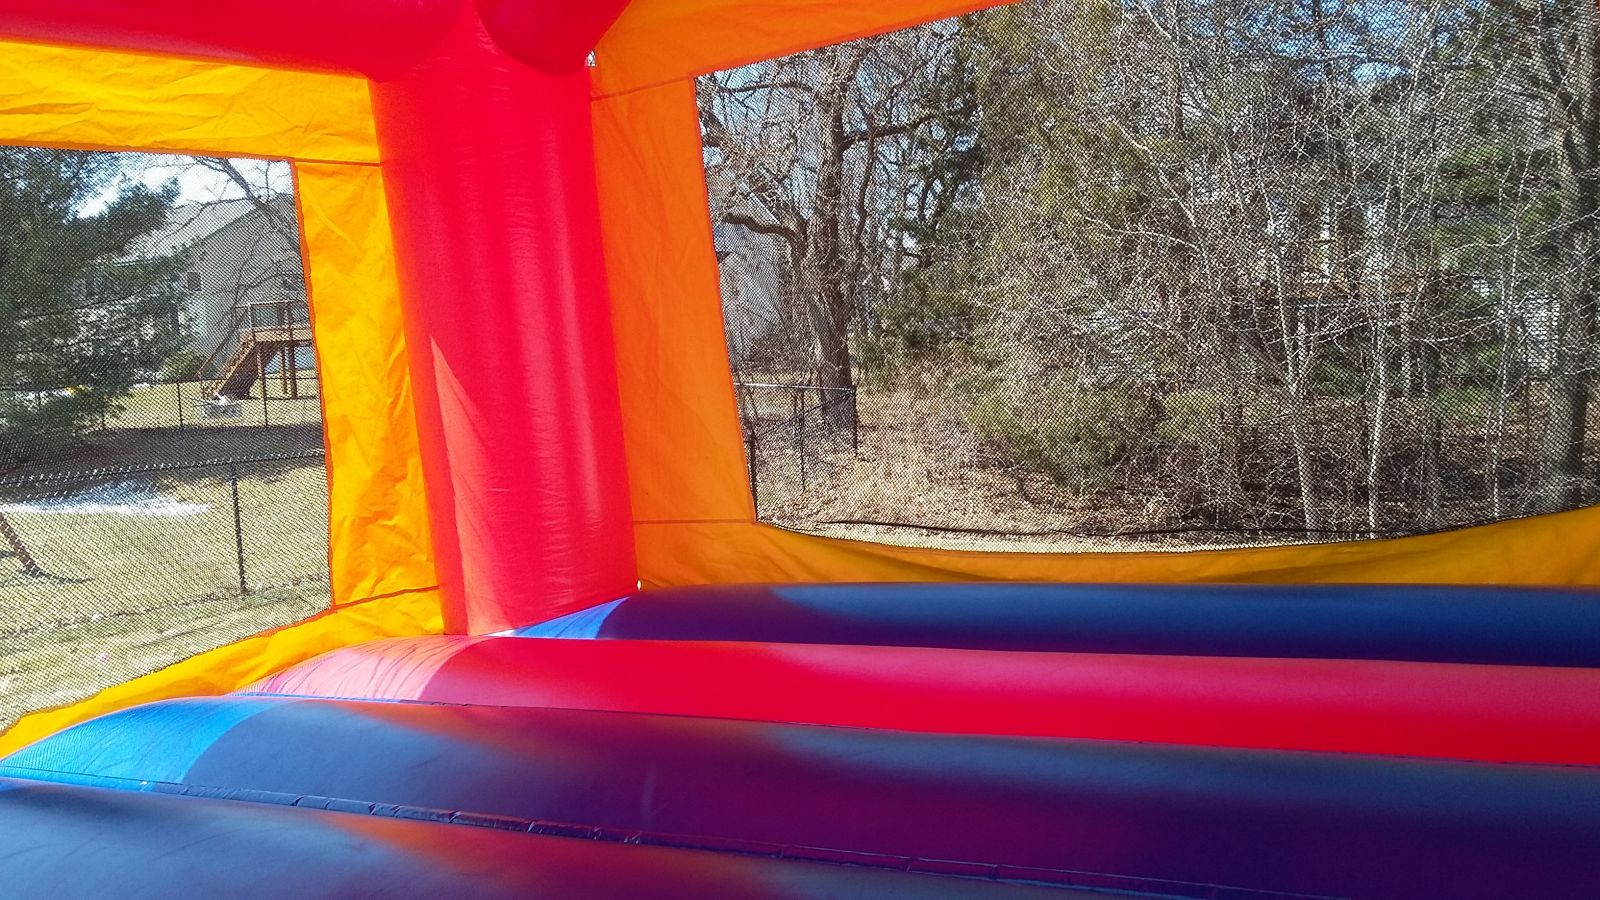 Interior of 15x15 Bounce House Rental from Froggy Hops